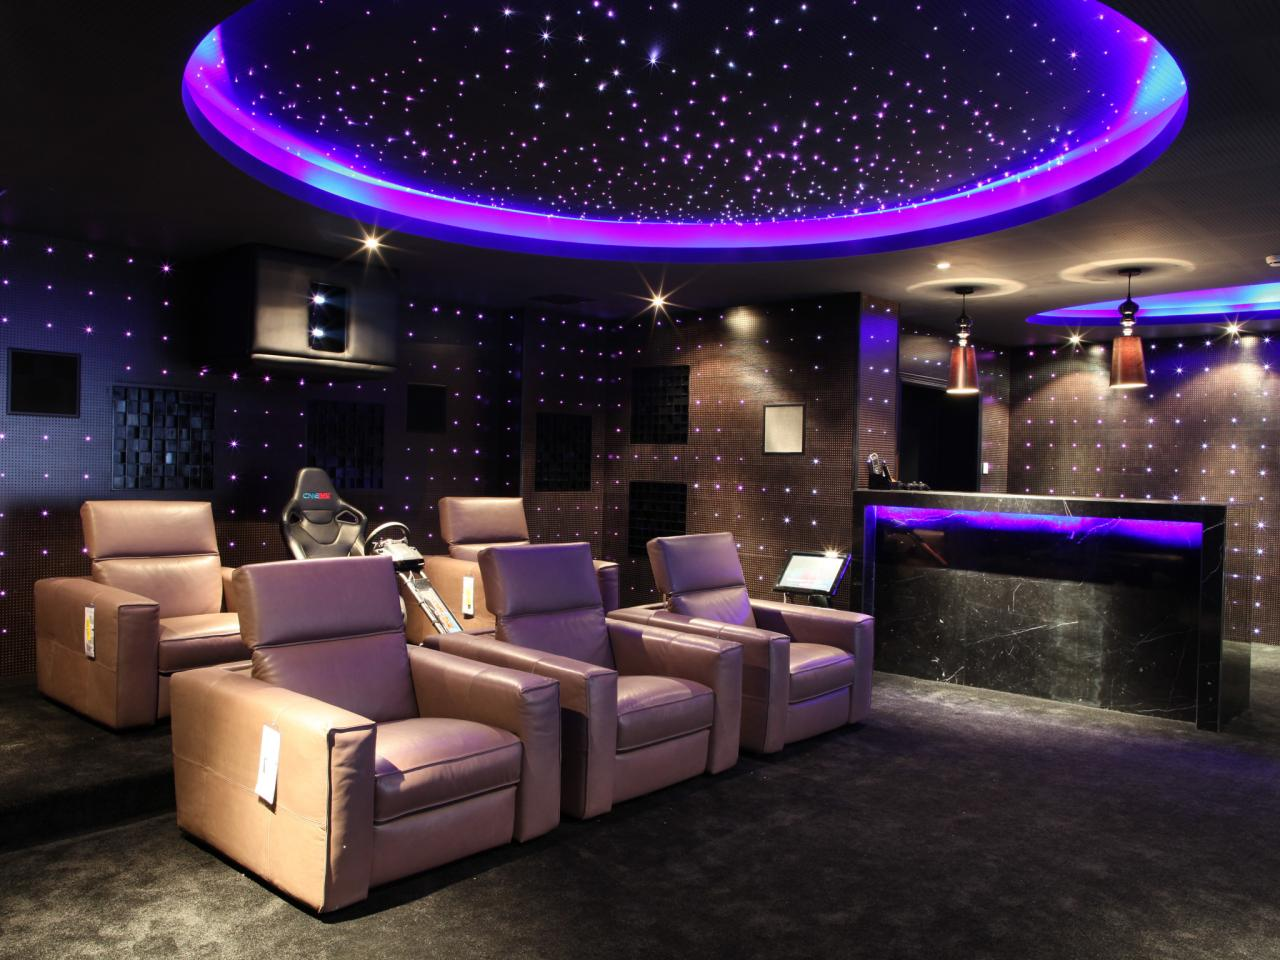 Superb Design Of The Home Theater Design With Purple Ceiling Ideas With Bars And Young Grey Sofas